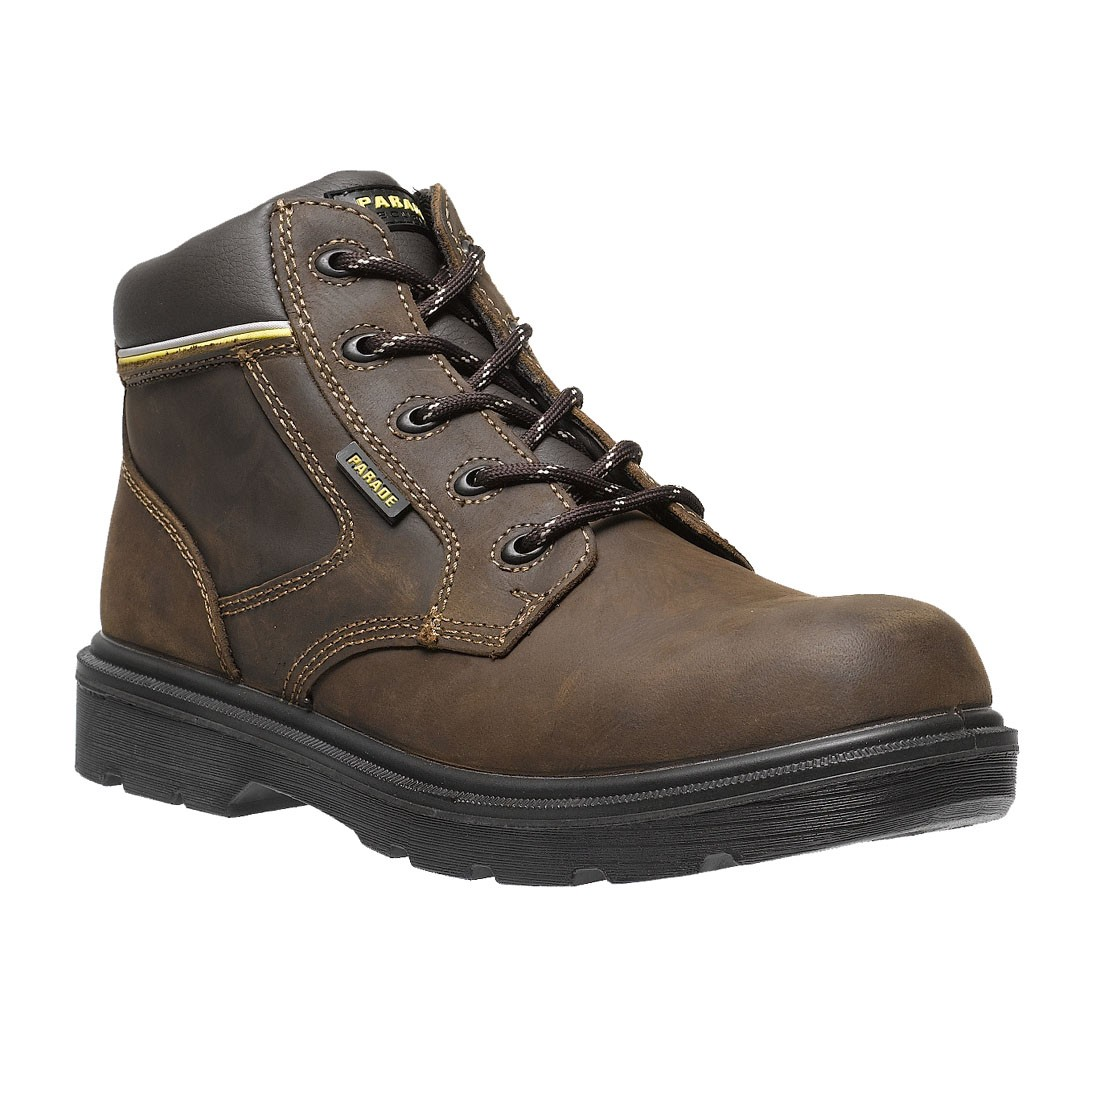 Parade Footwear Forest Mens Brown Leather Metal Free Safety Work Boots